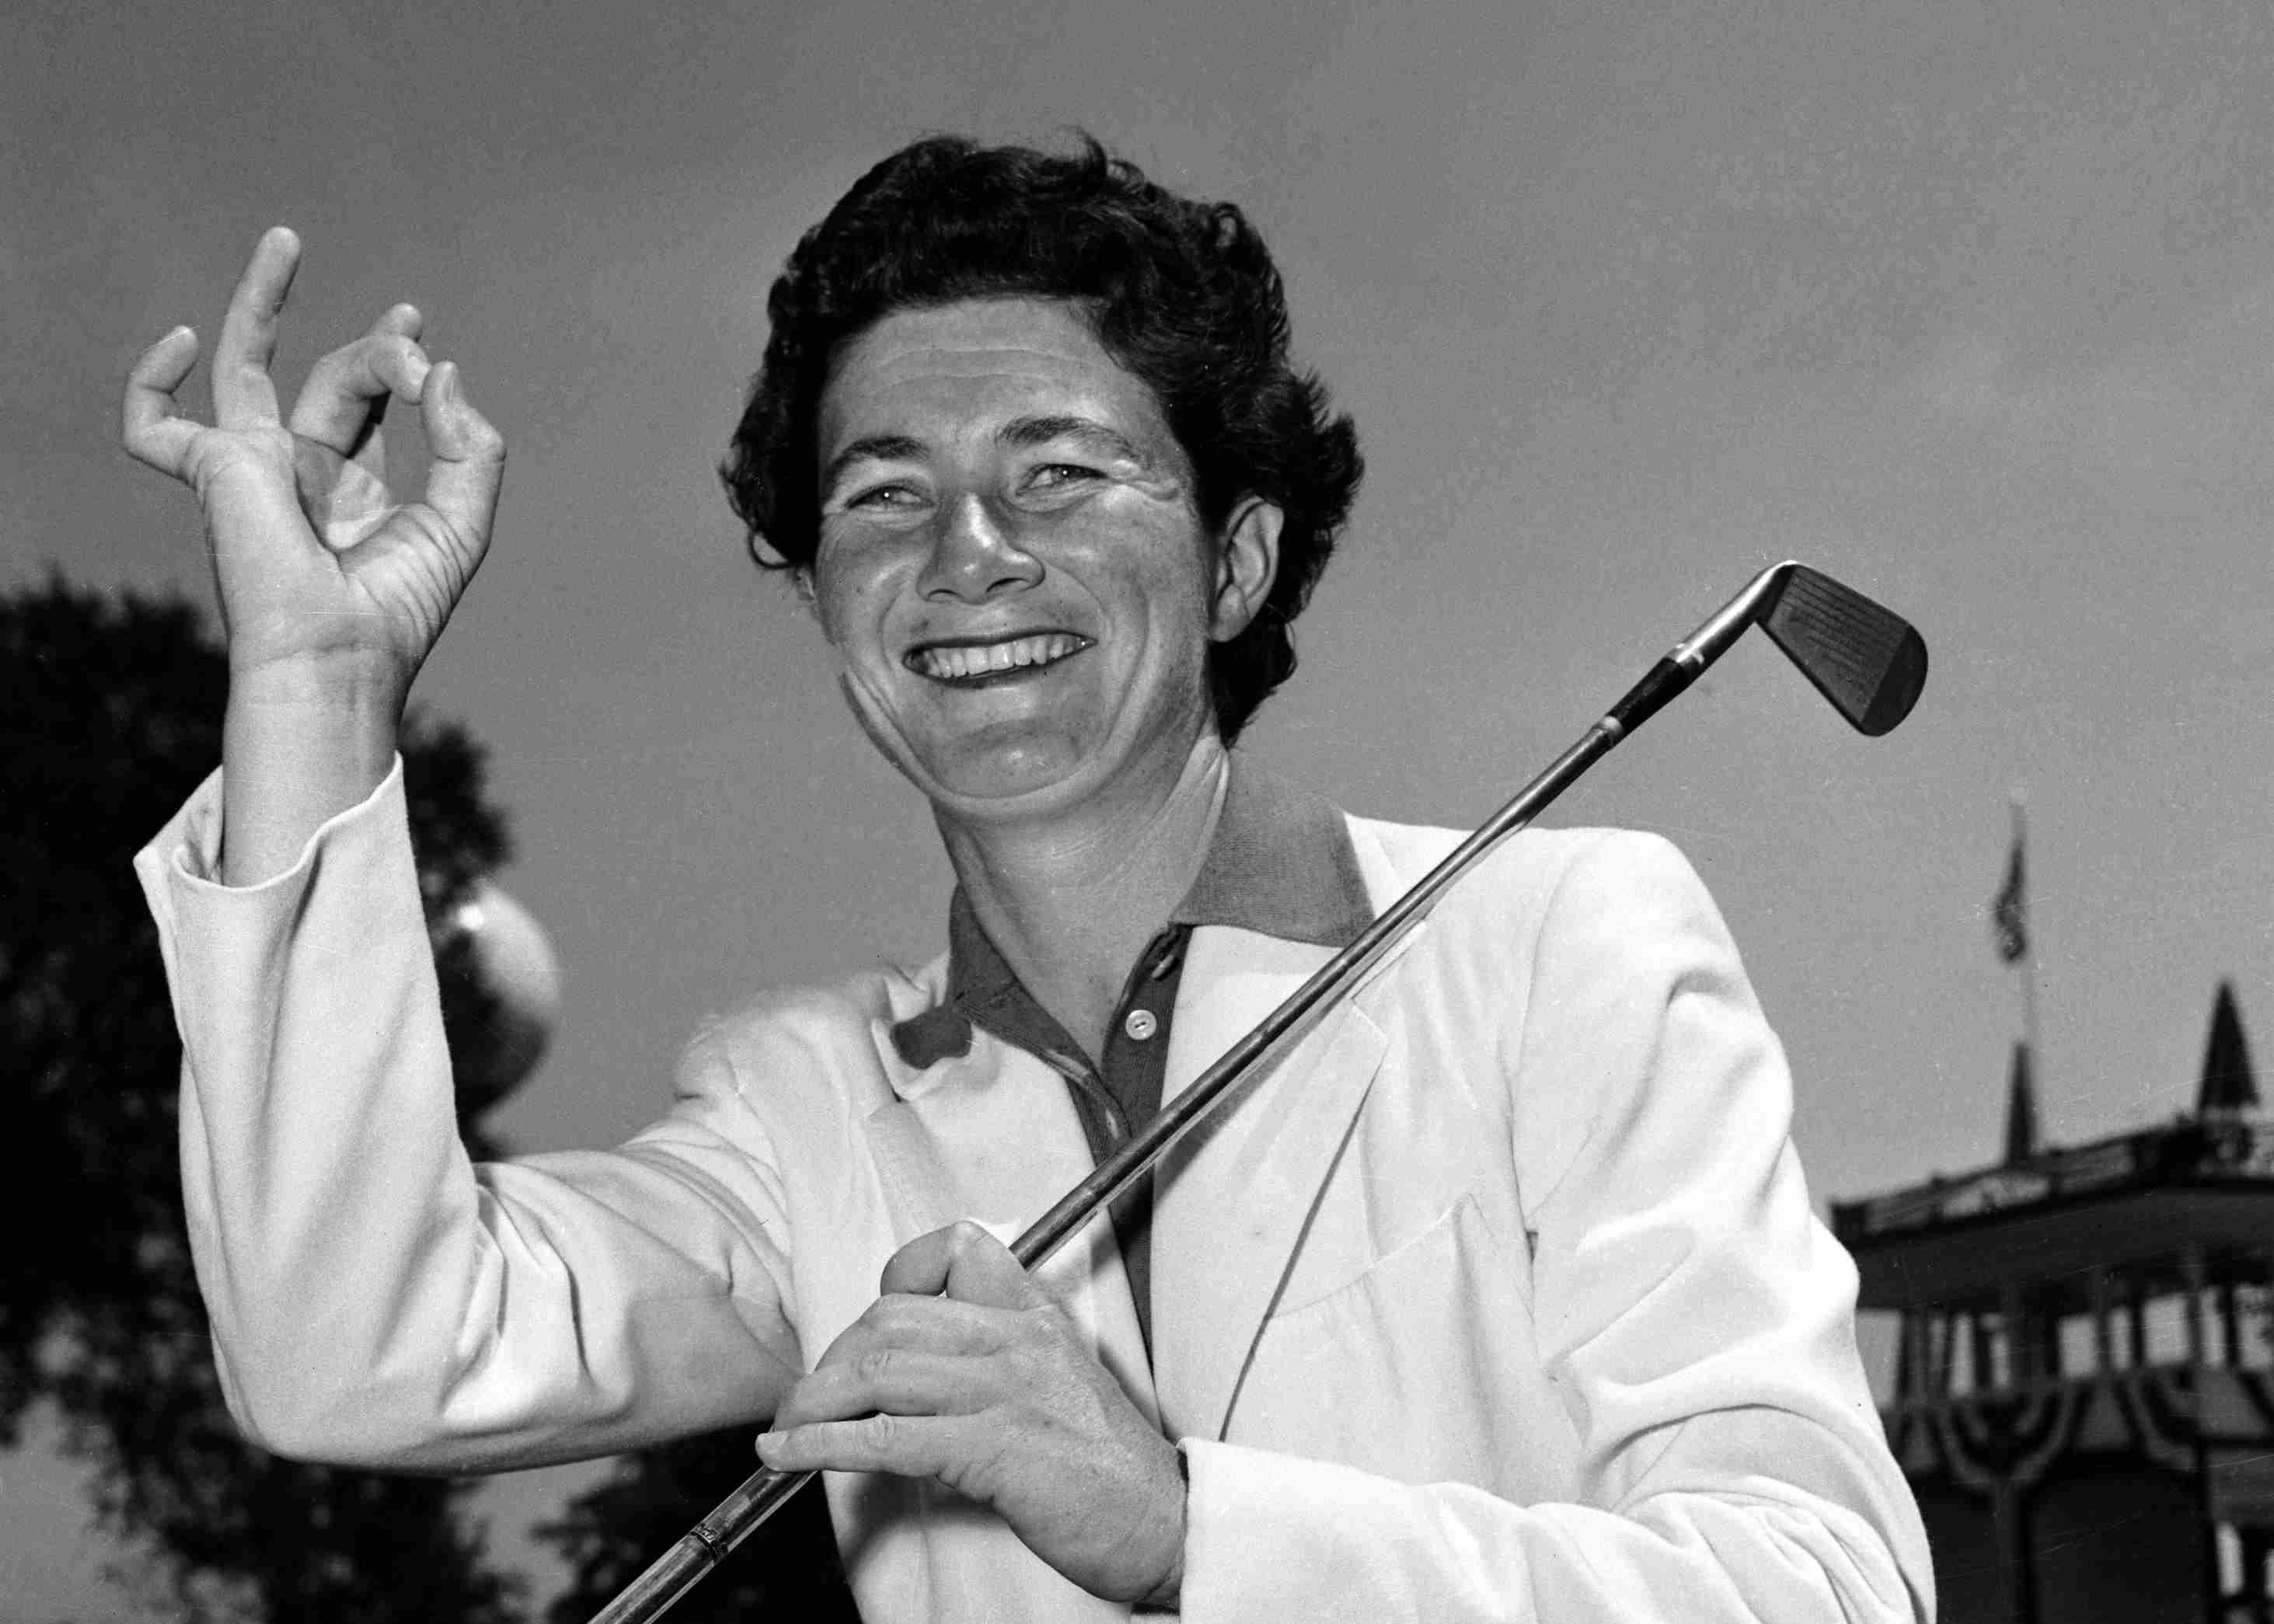 Louise Suggs, one of the LPGA's founder, in 1952